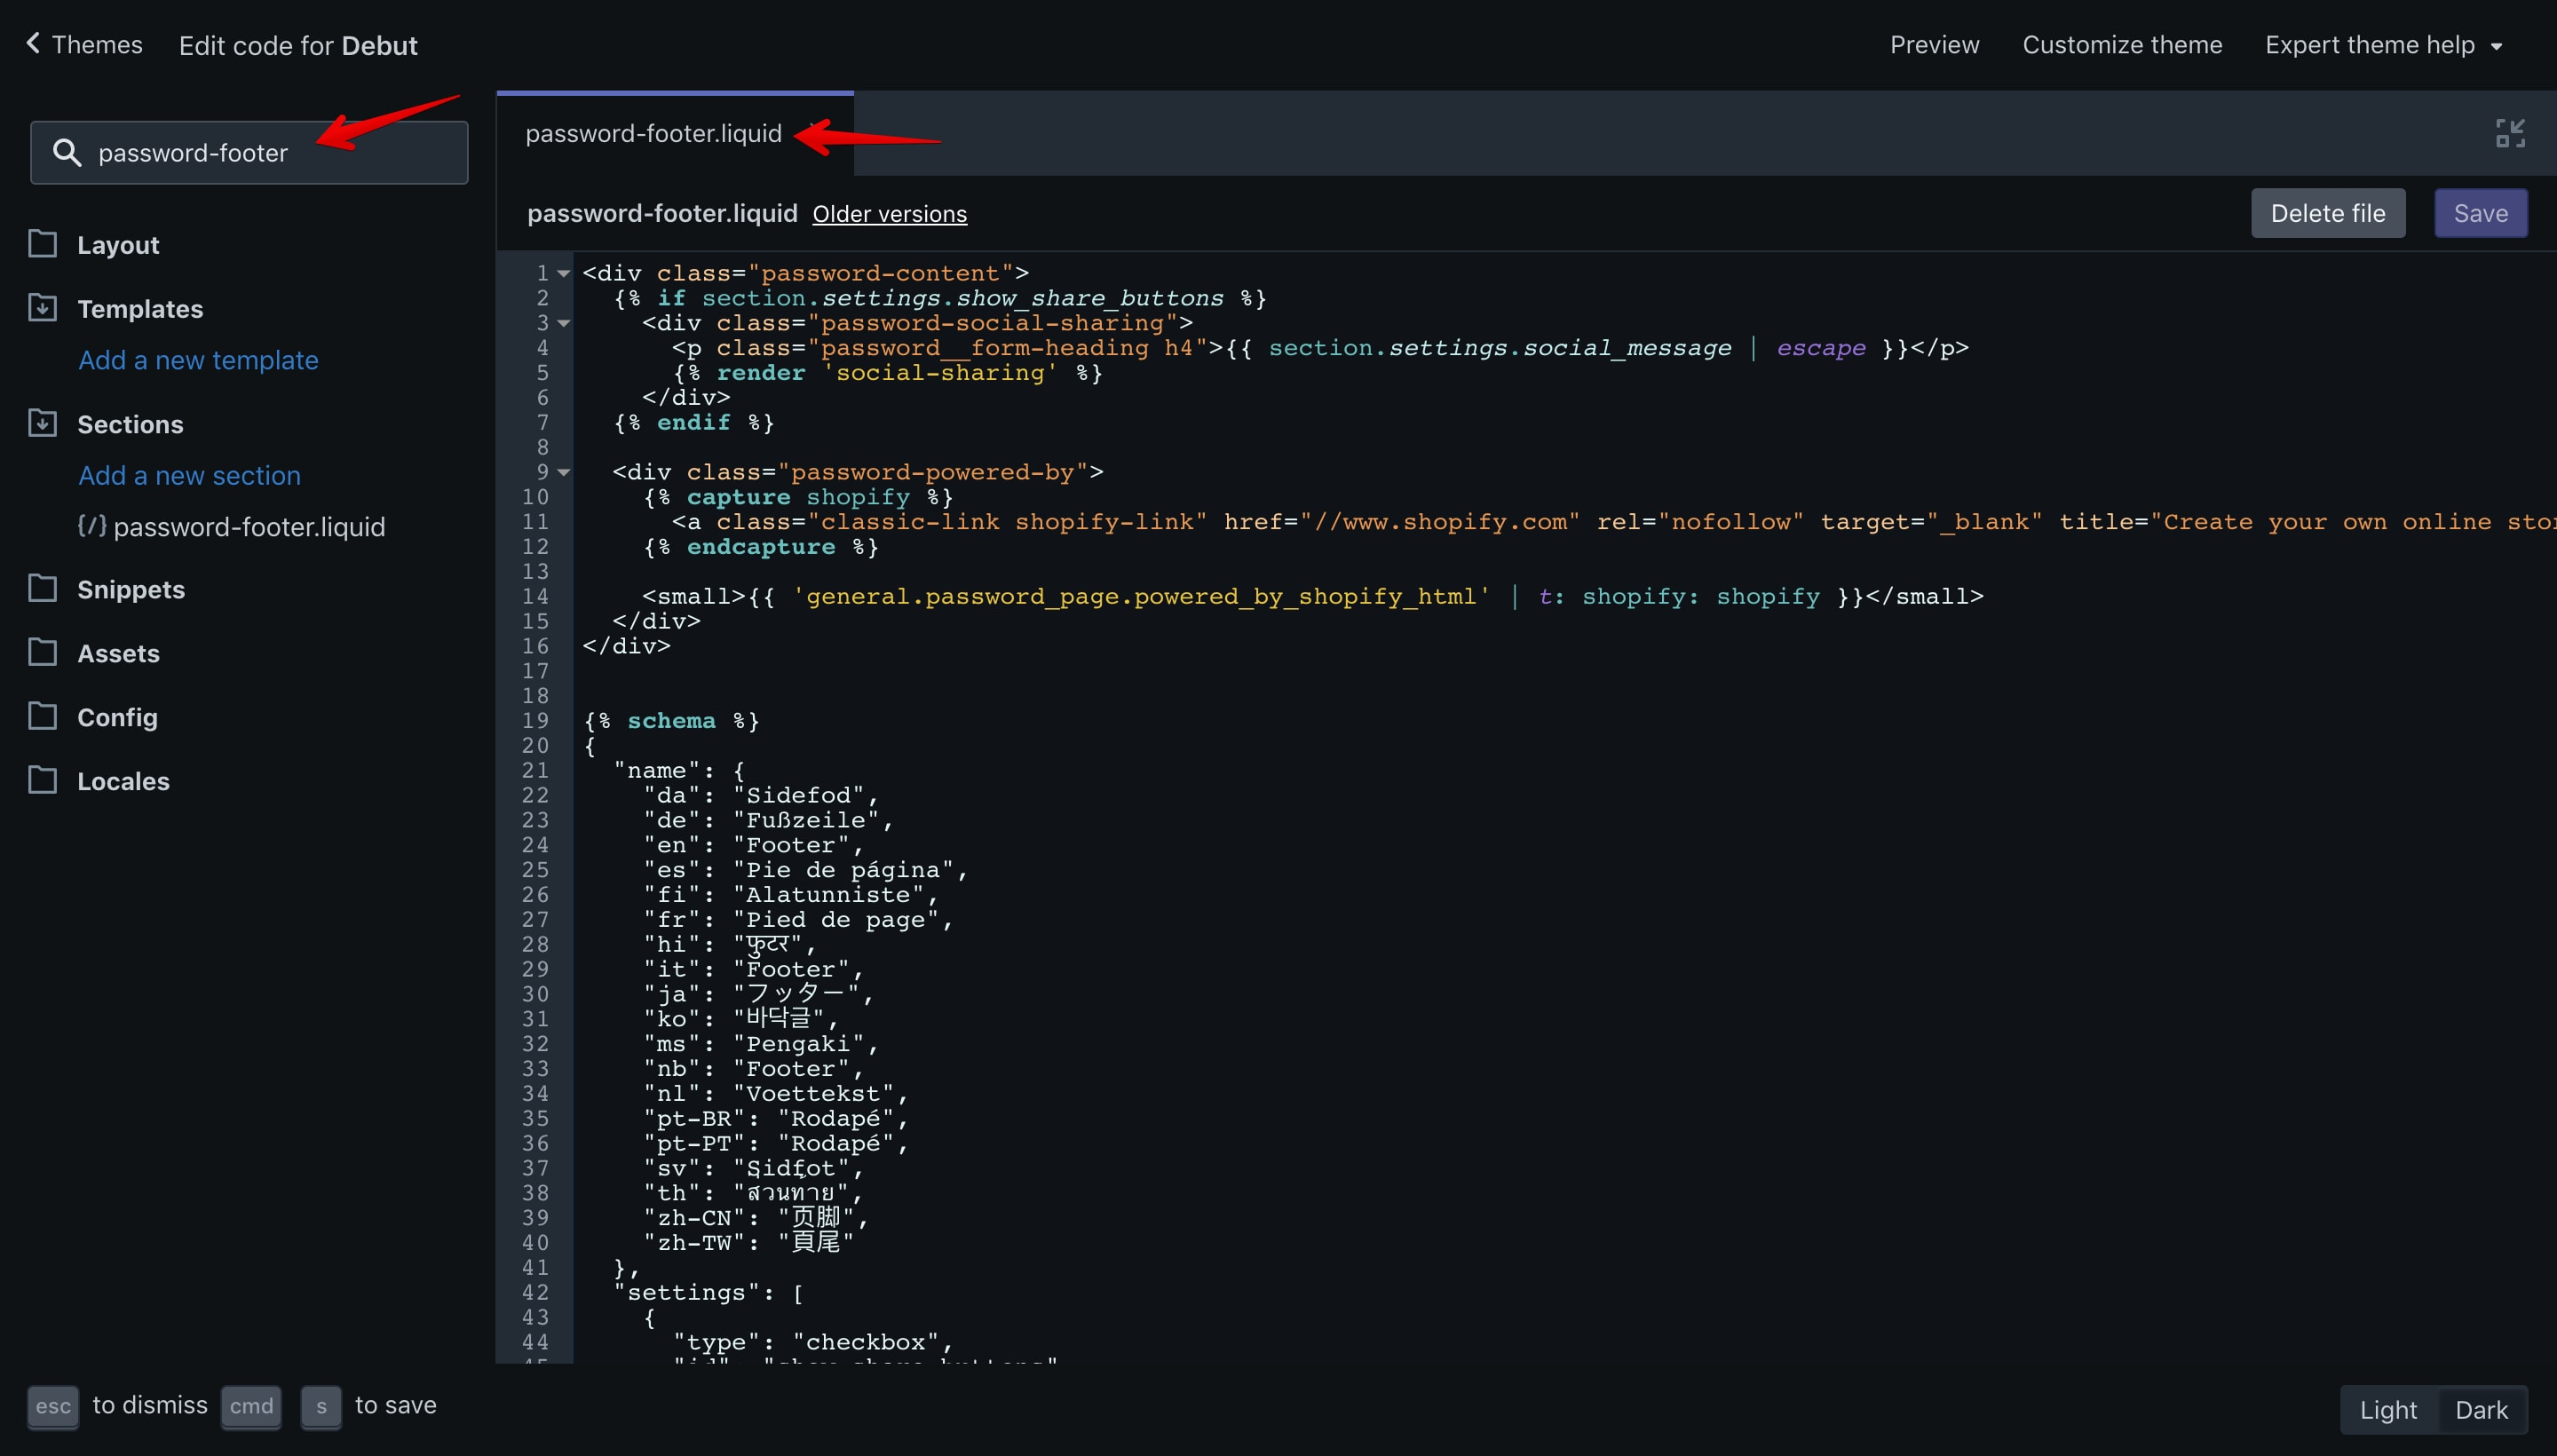 """Debut theme """"password-footer.liquid"""" file opened in the code editor."""